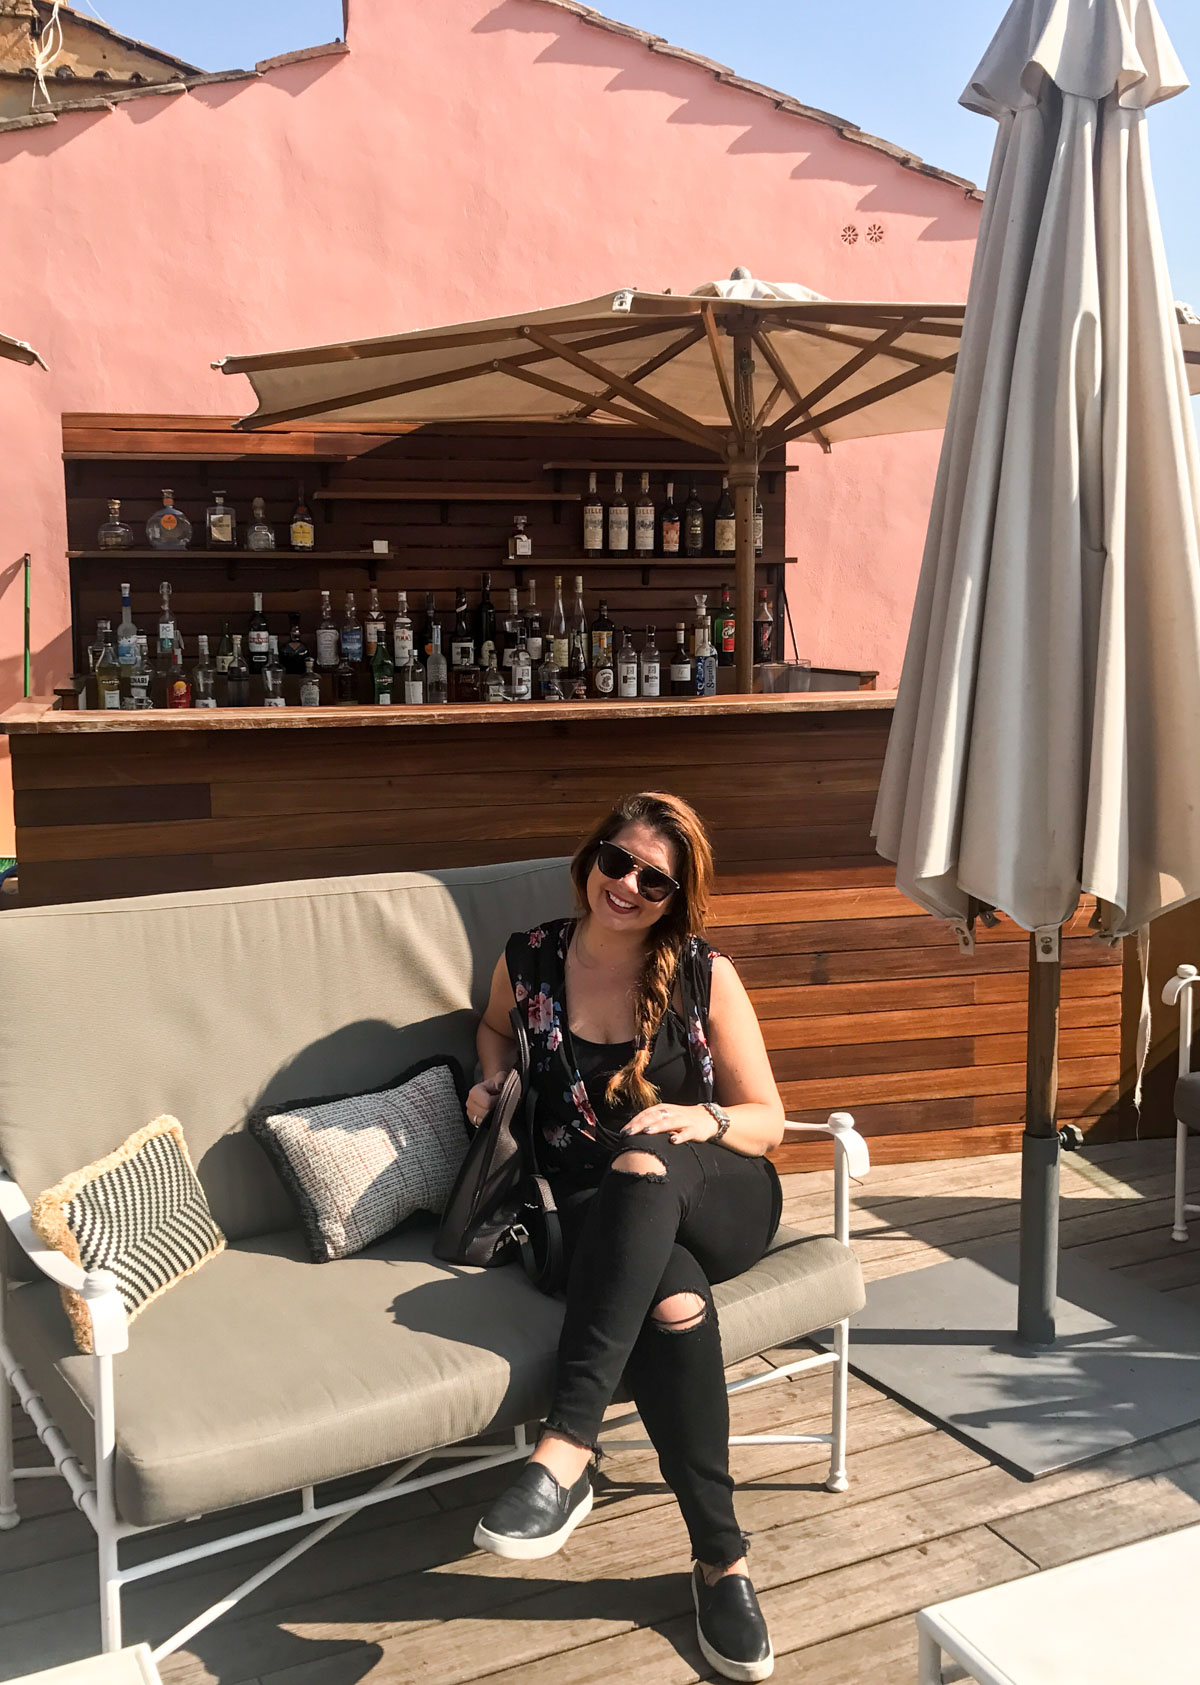 Rooftop Bar at The Domo in Rome, Italy